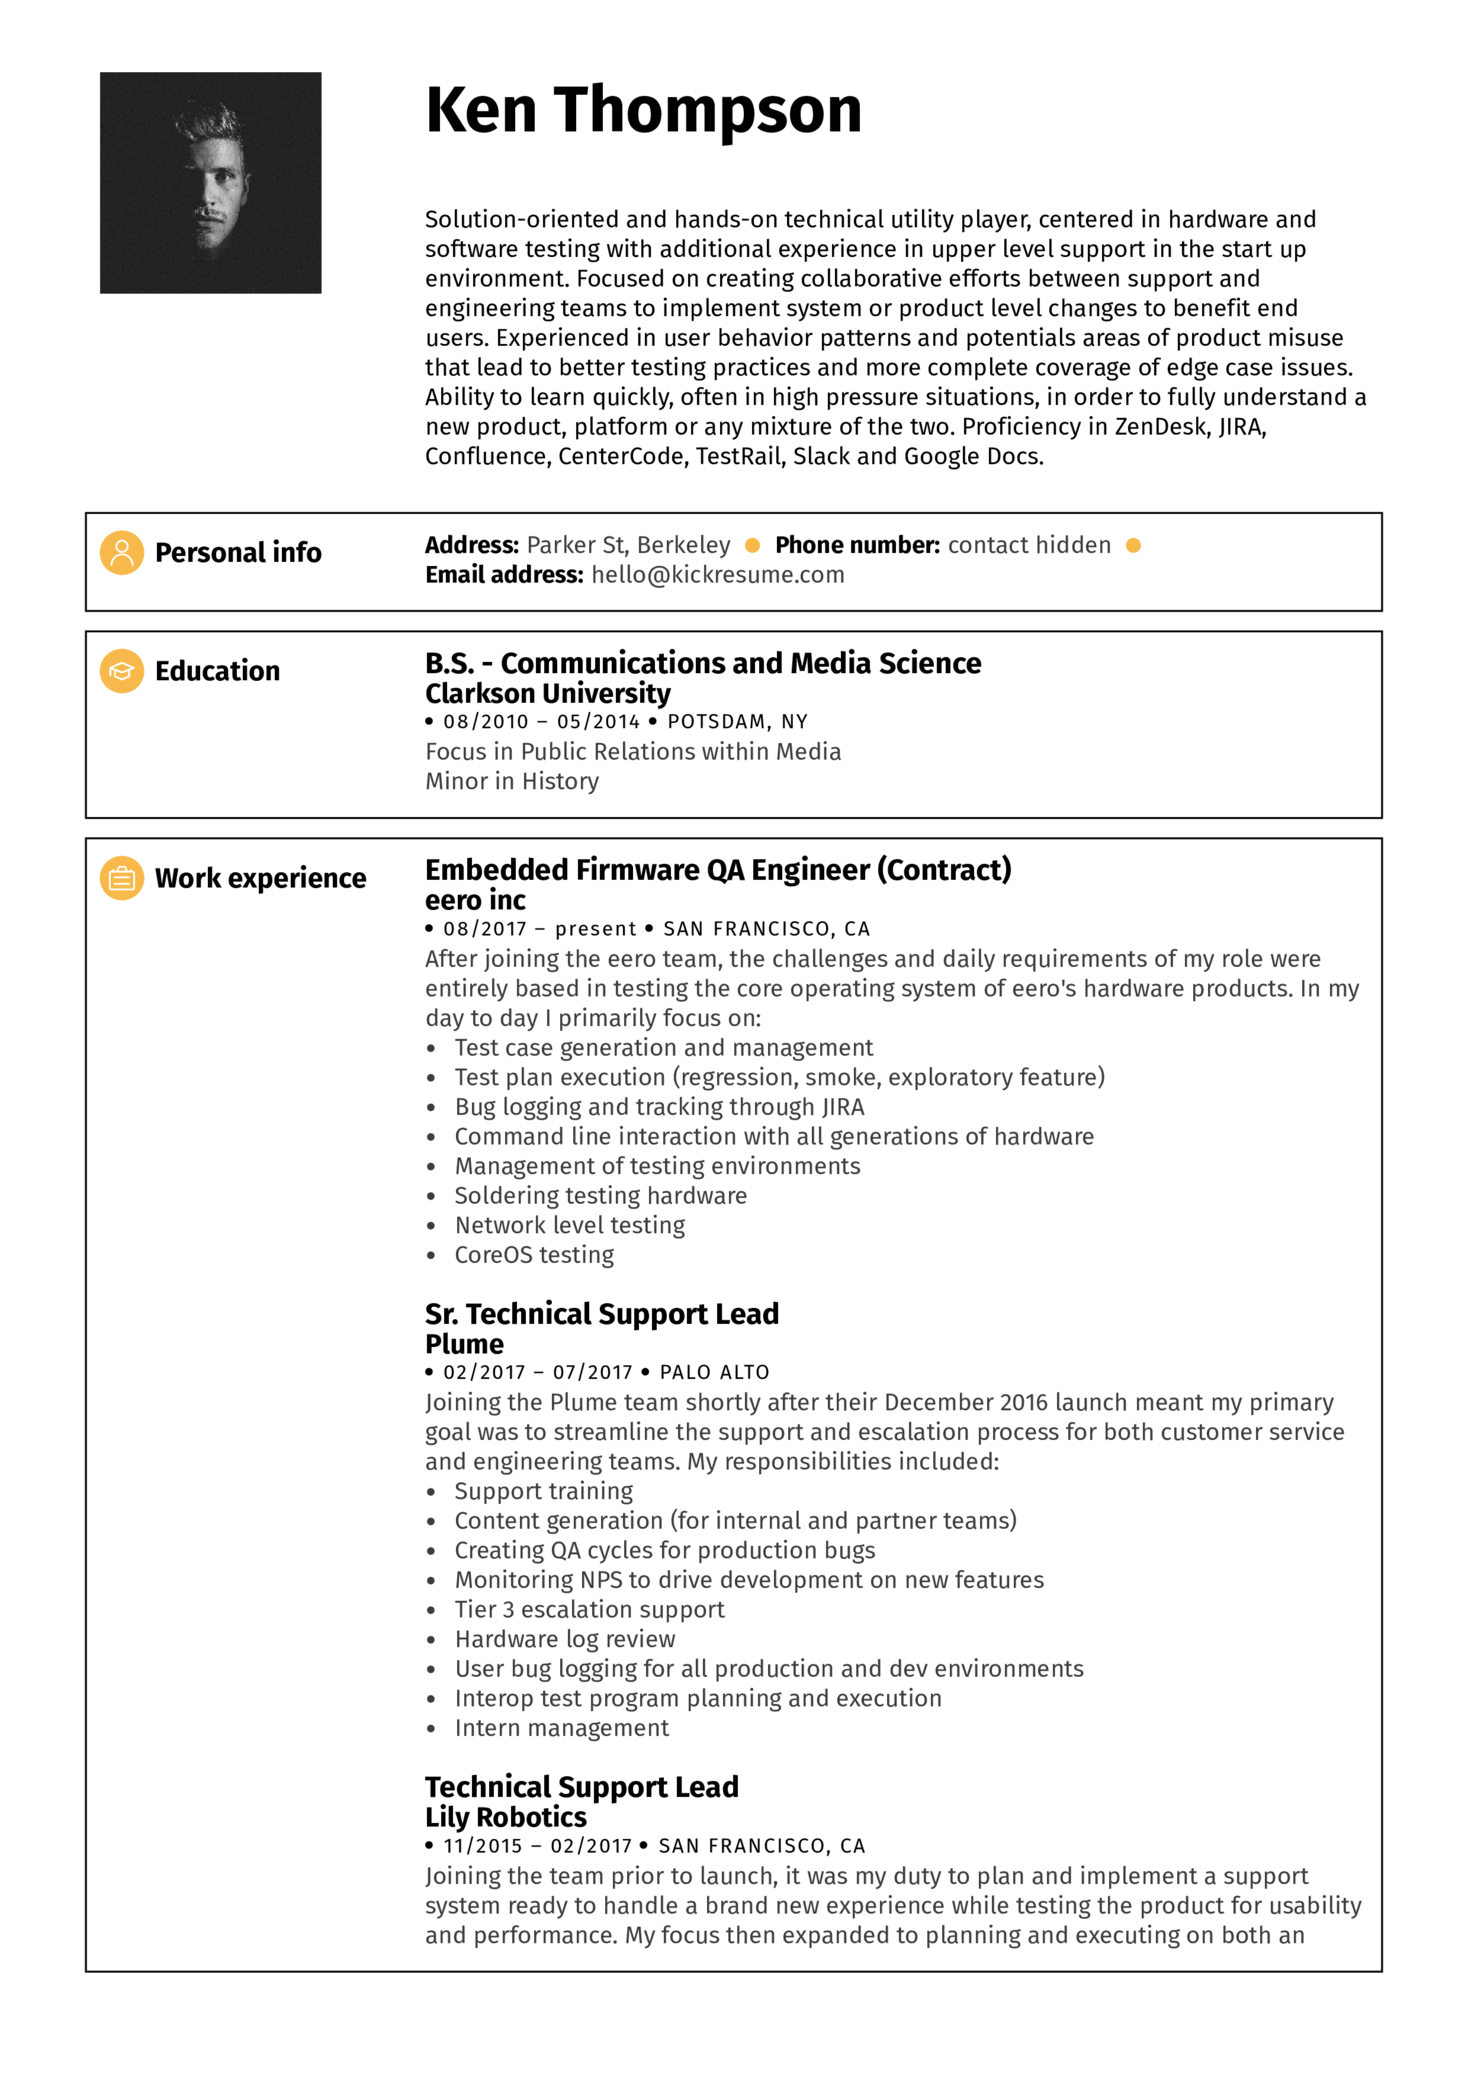 qa engineer resume example resume samples career help center